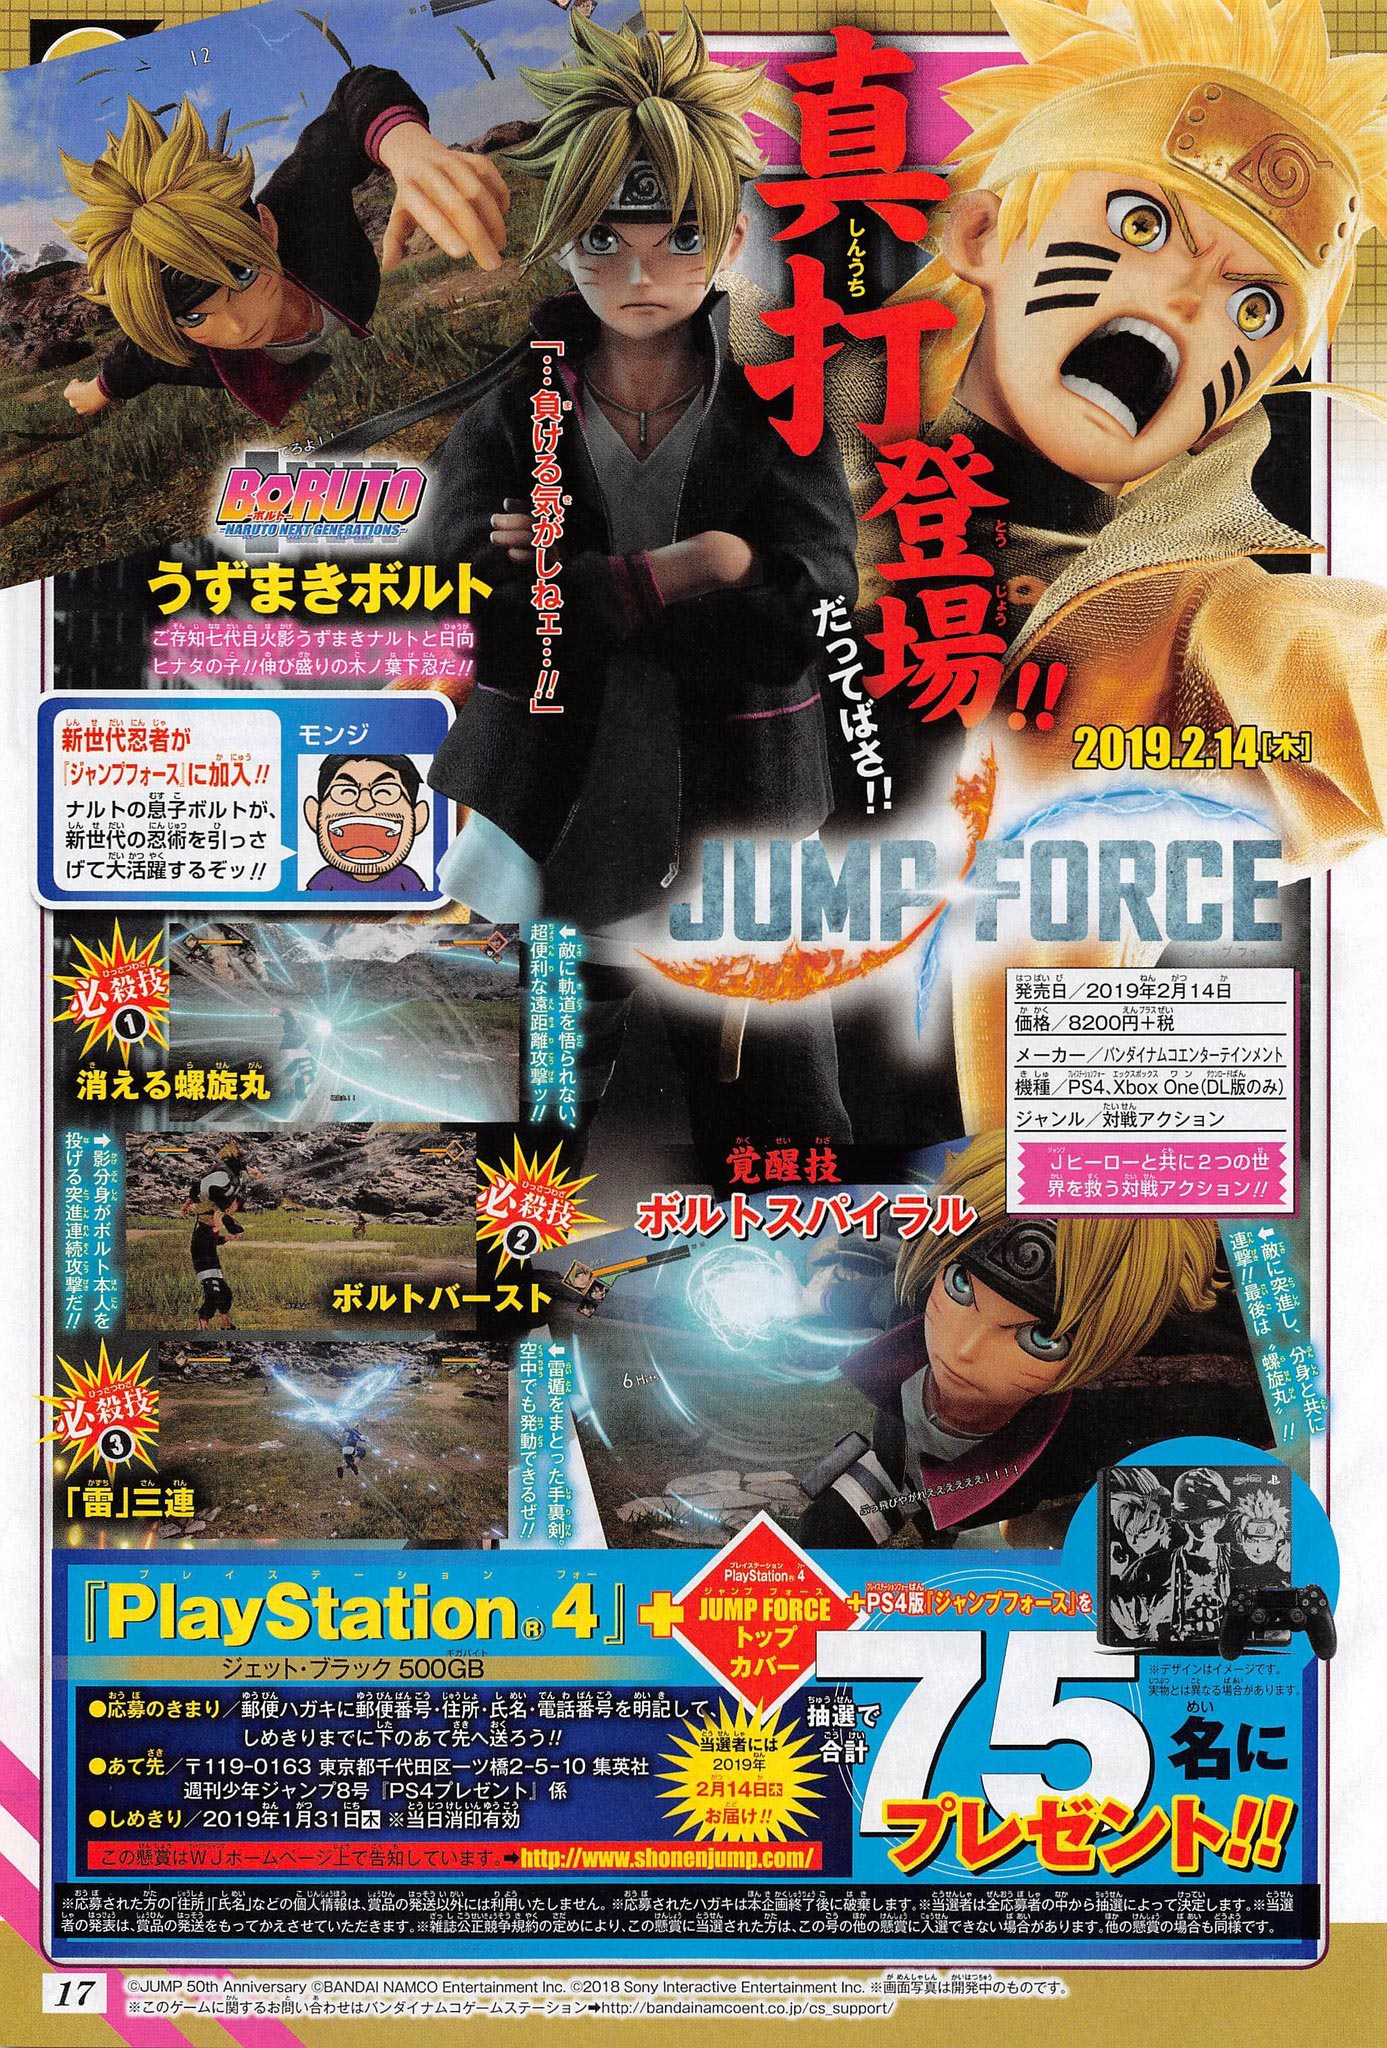 New Jump Force screenshots for Boruto, Kakashi, Gaara and Kaguya 1 out of 9 image gallery